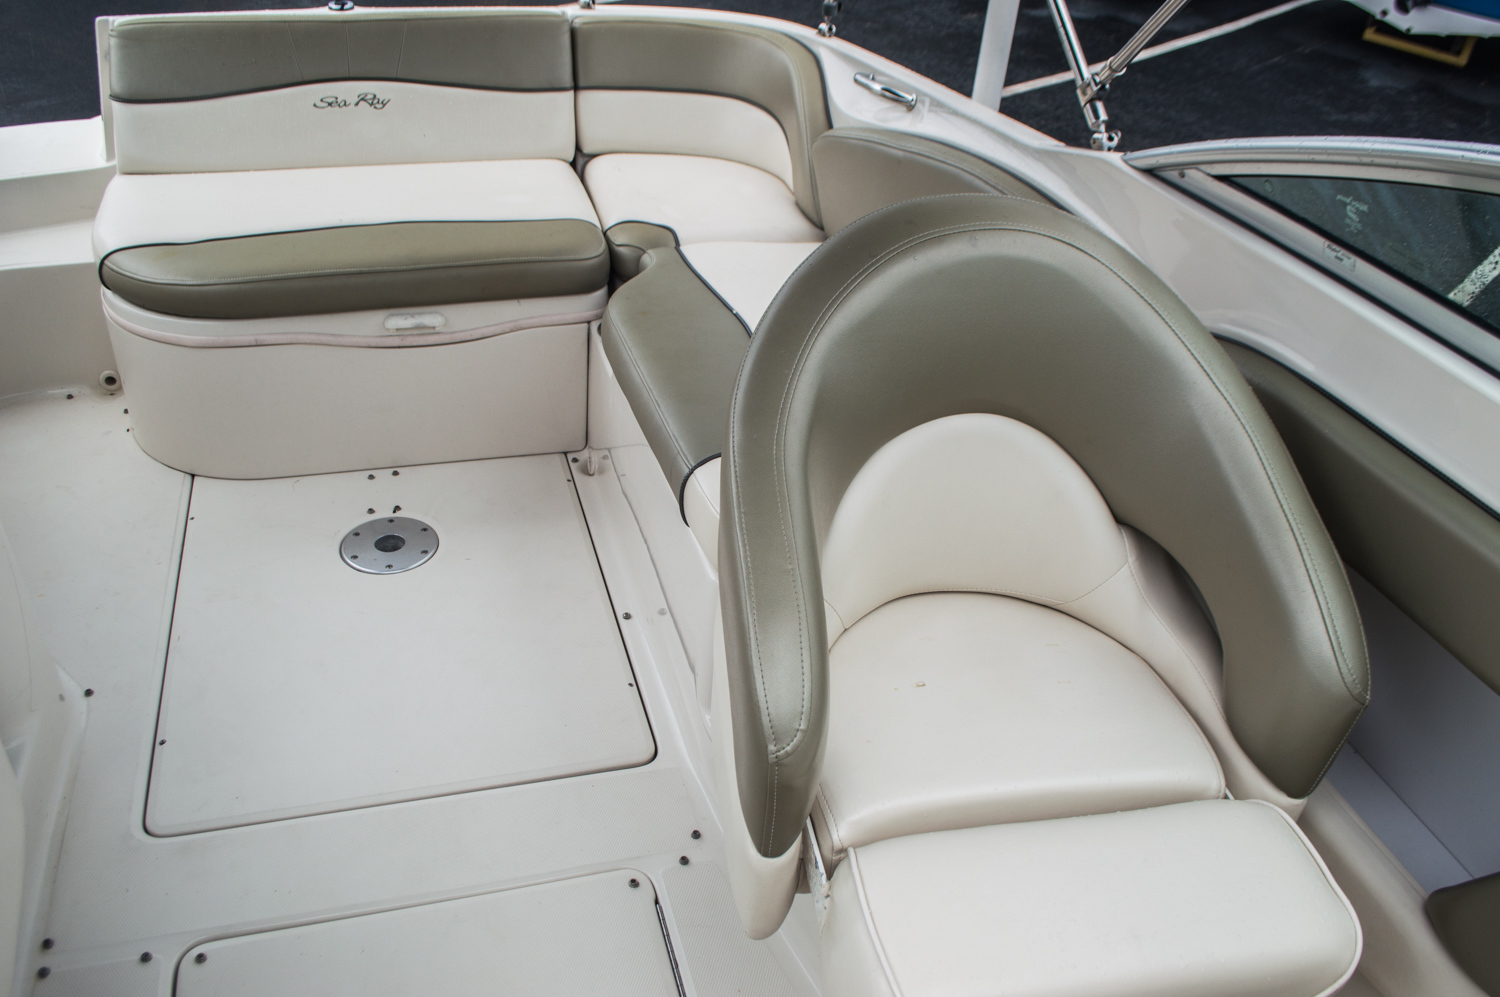 Thumbnail 32 for Used 2005 Sea Ray 240 Sundeck boat for sale in West Palm Beach, FL